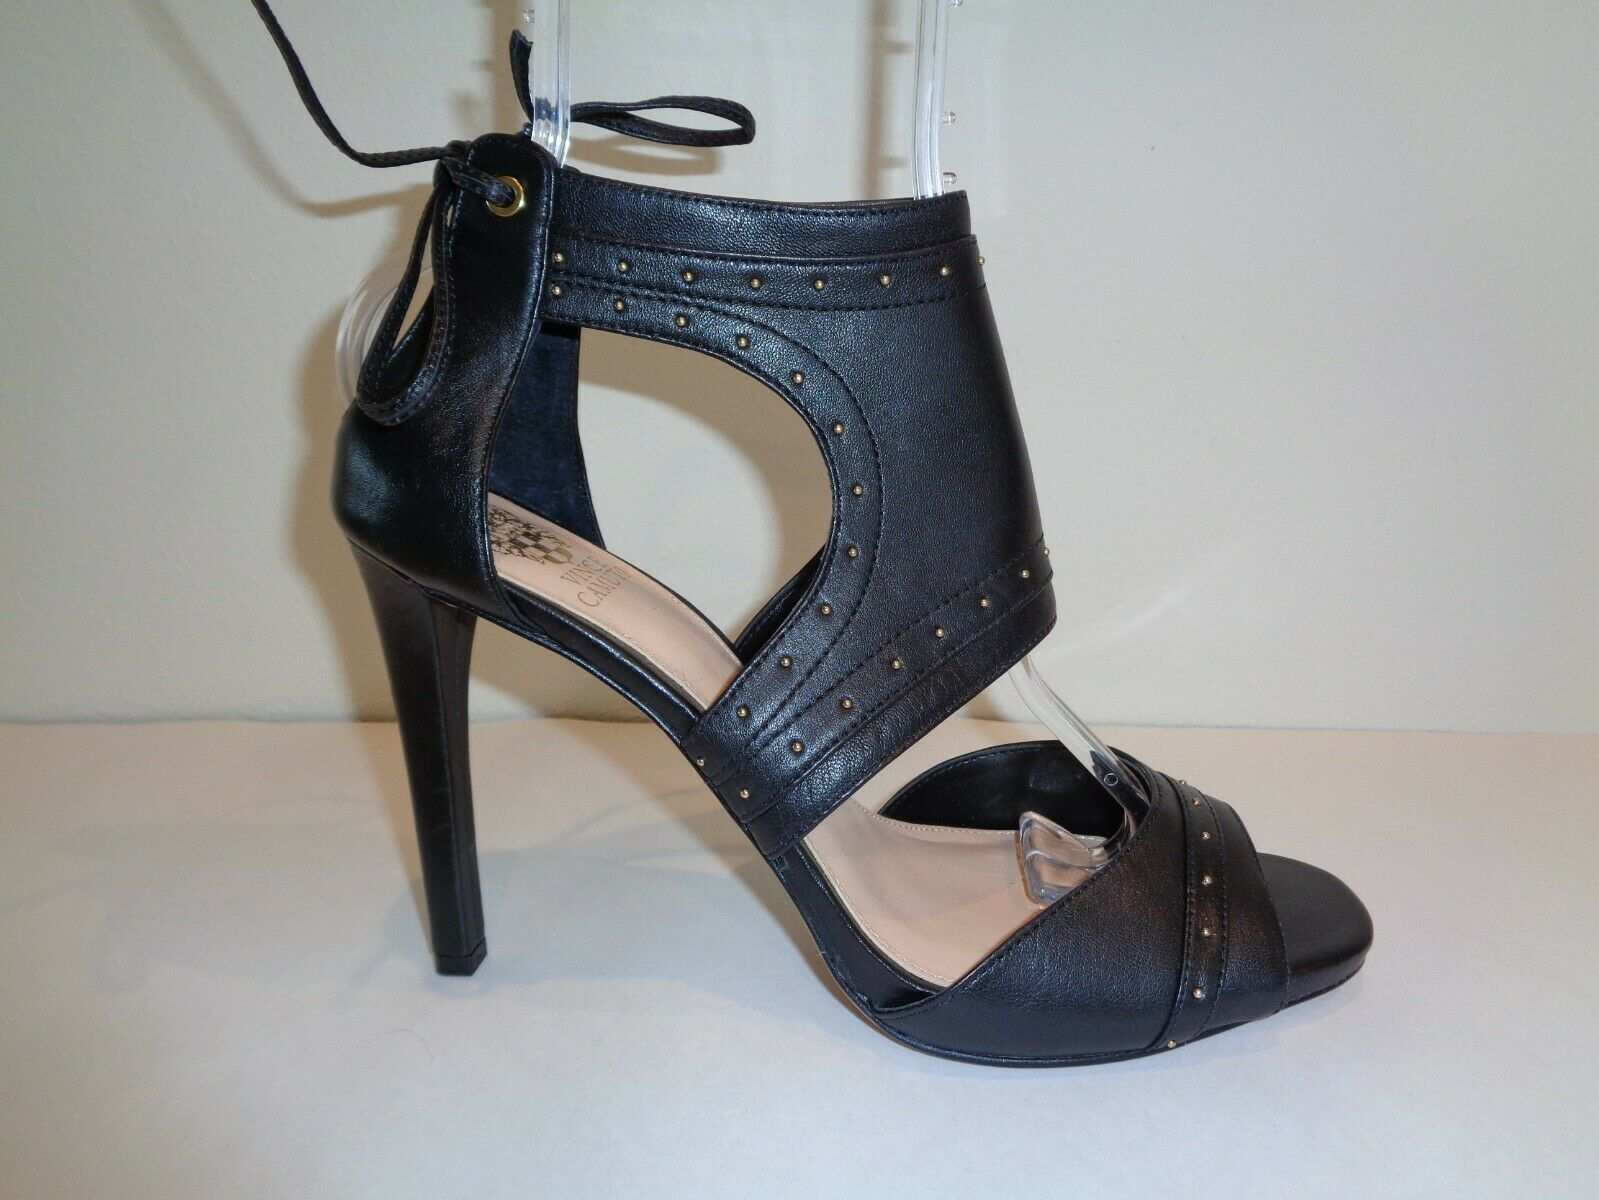 Vince Camuto Size 10 M ROUX Black Leather Heels Sandals New Womens shoes